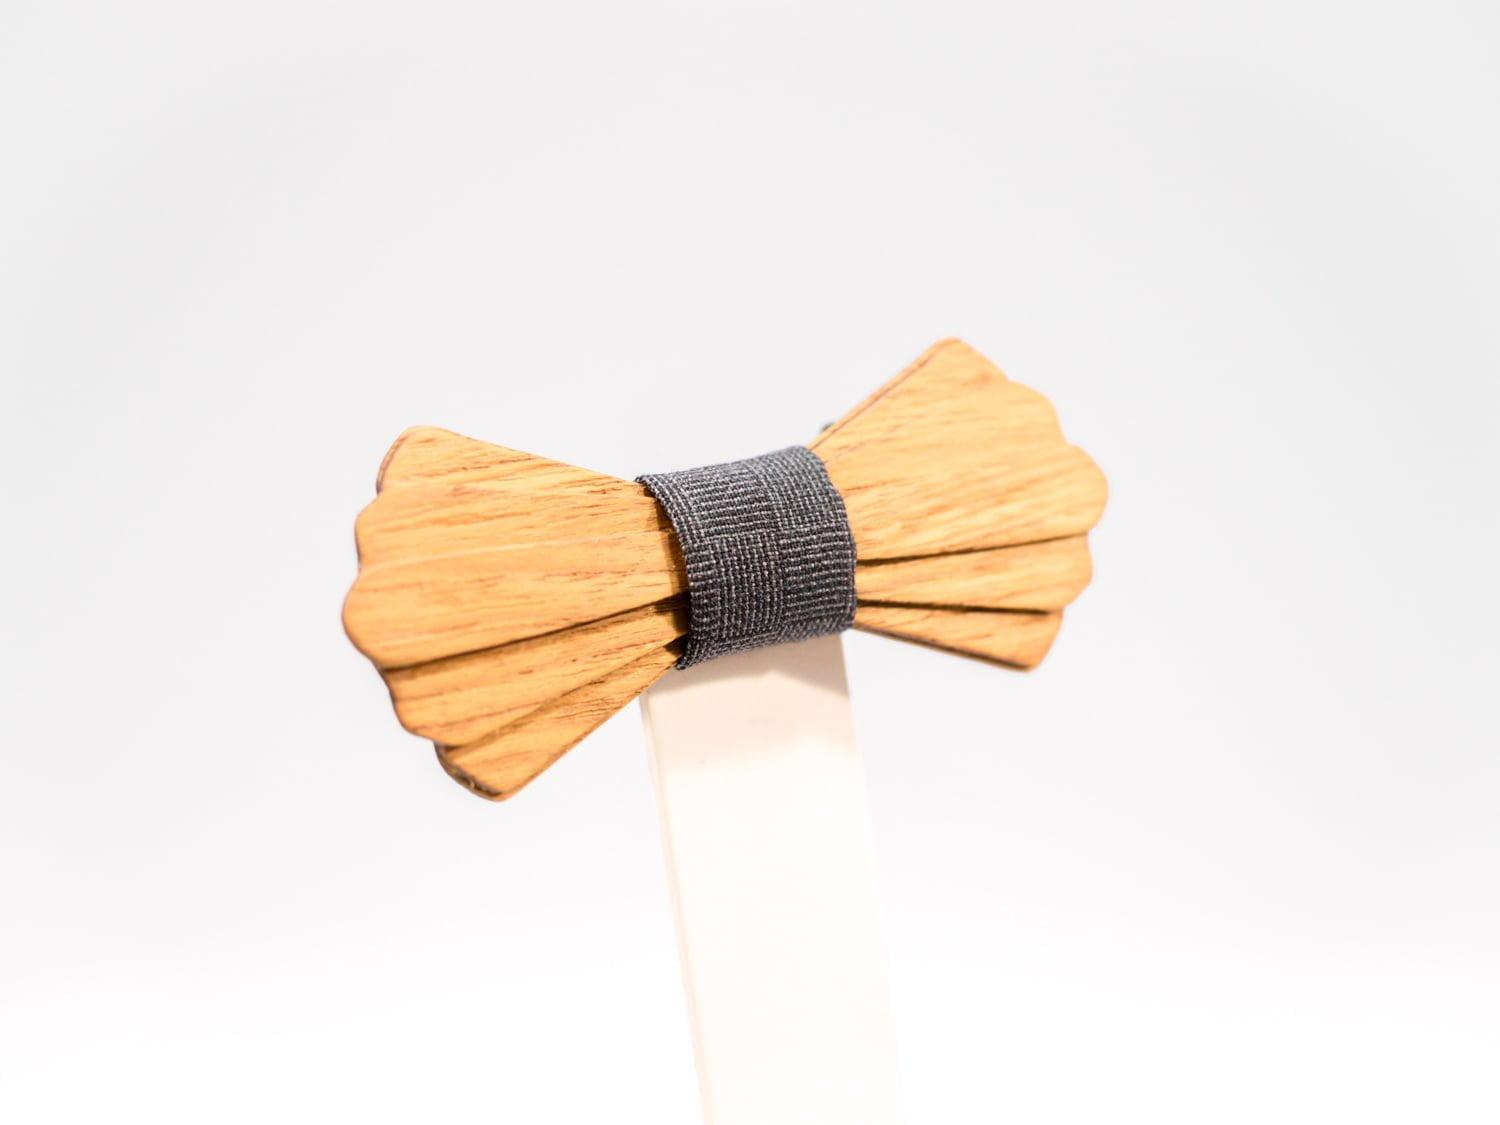 Jr. SÖÖR Elias neckwear in teak. A unique wooden bowtie